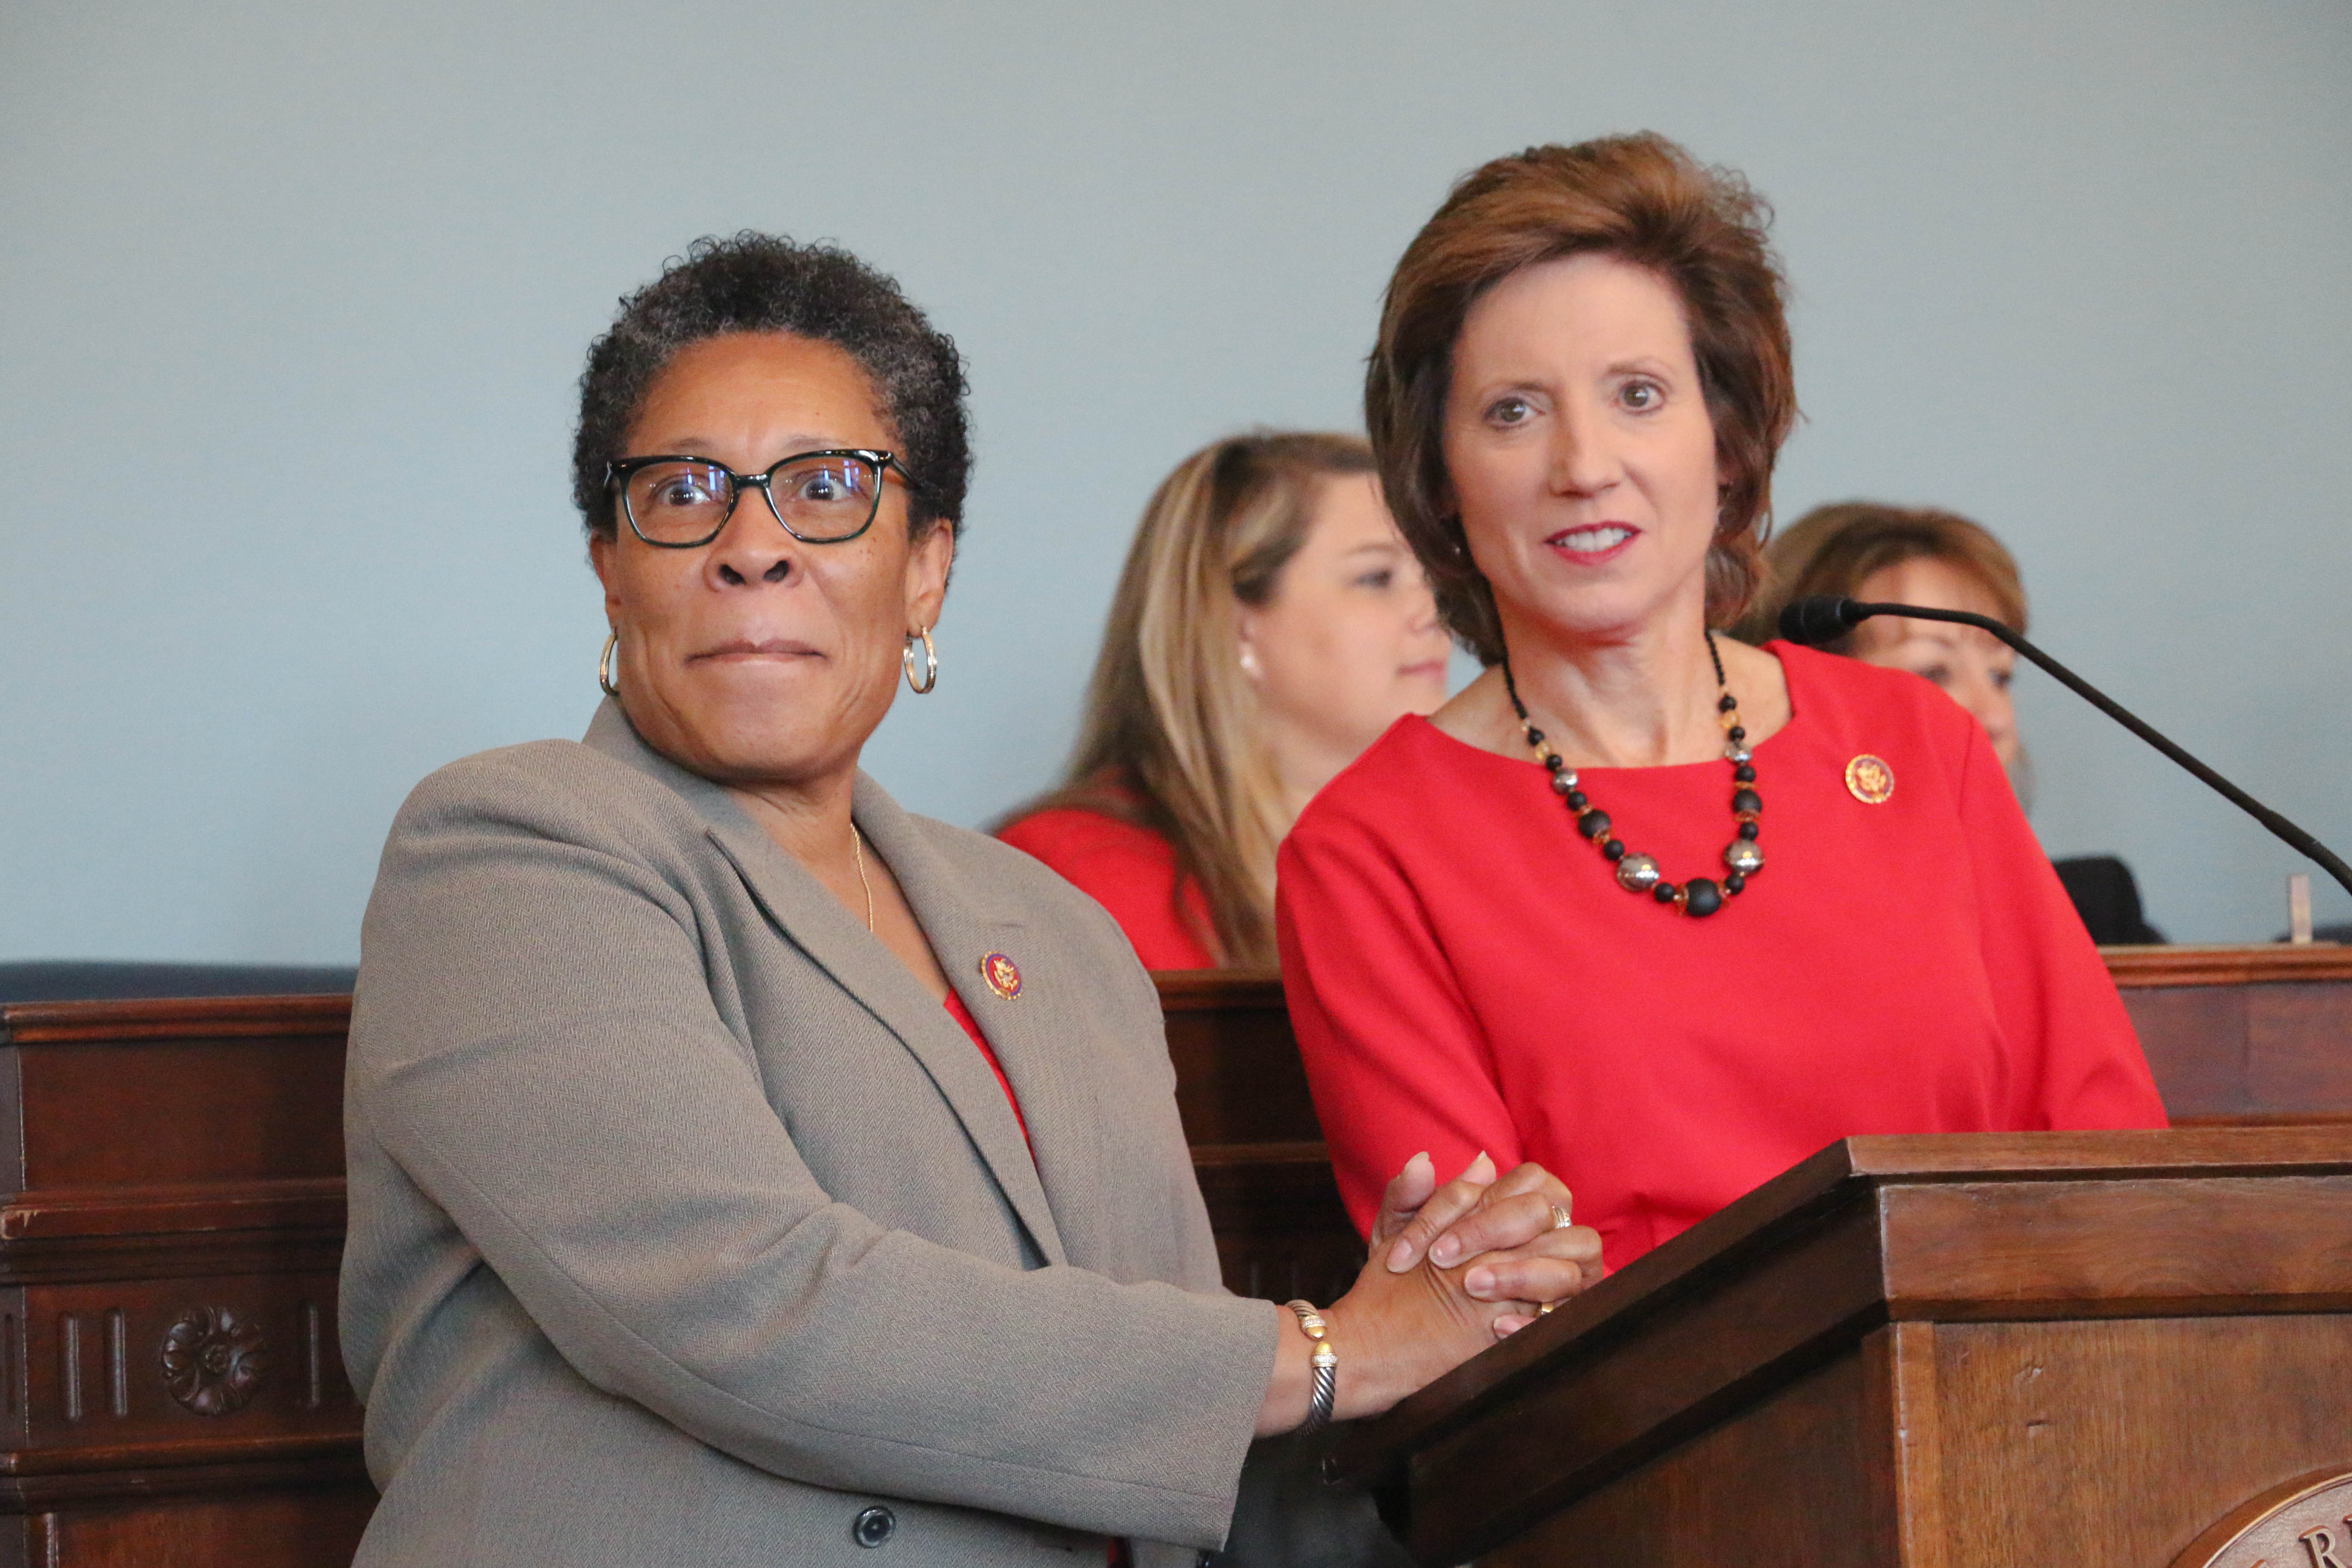 Rep. Marcia Fudge and Vicky Hartzler address women during fly-in breakfast.